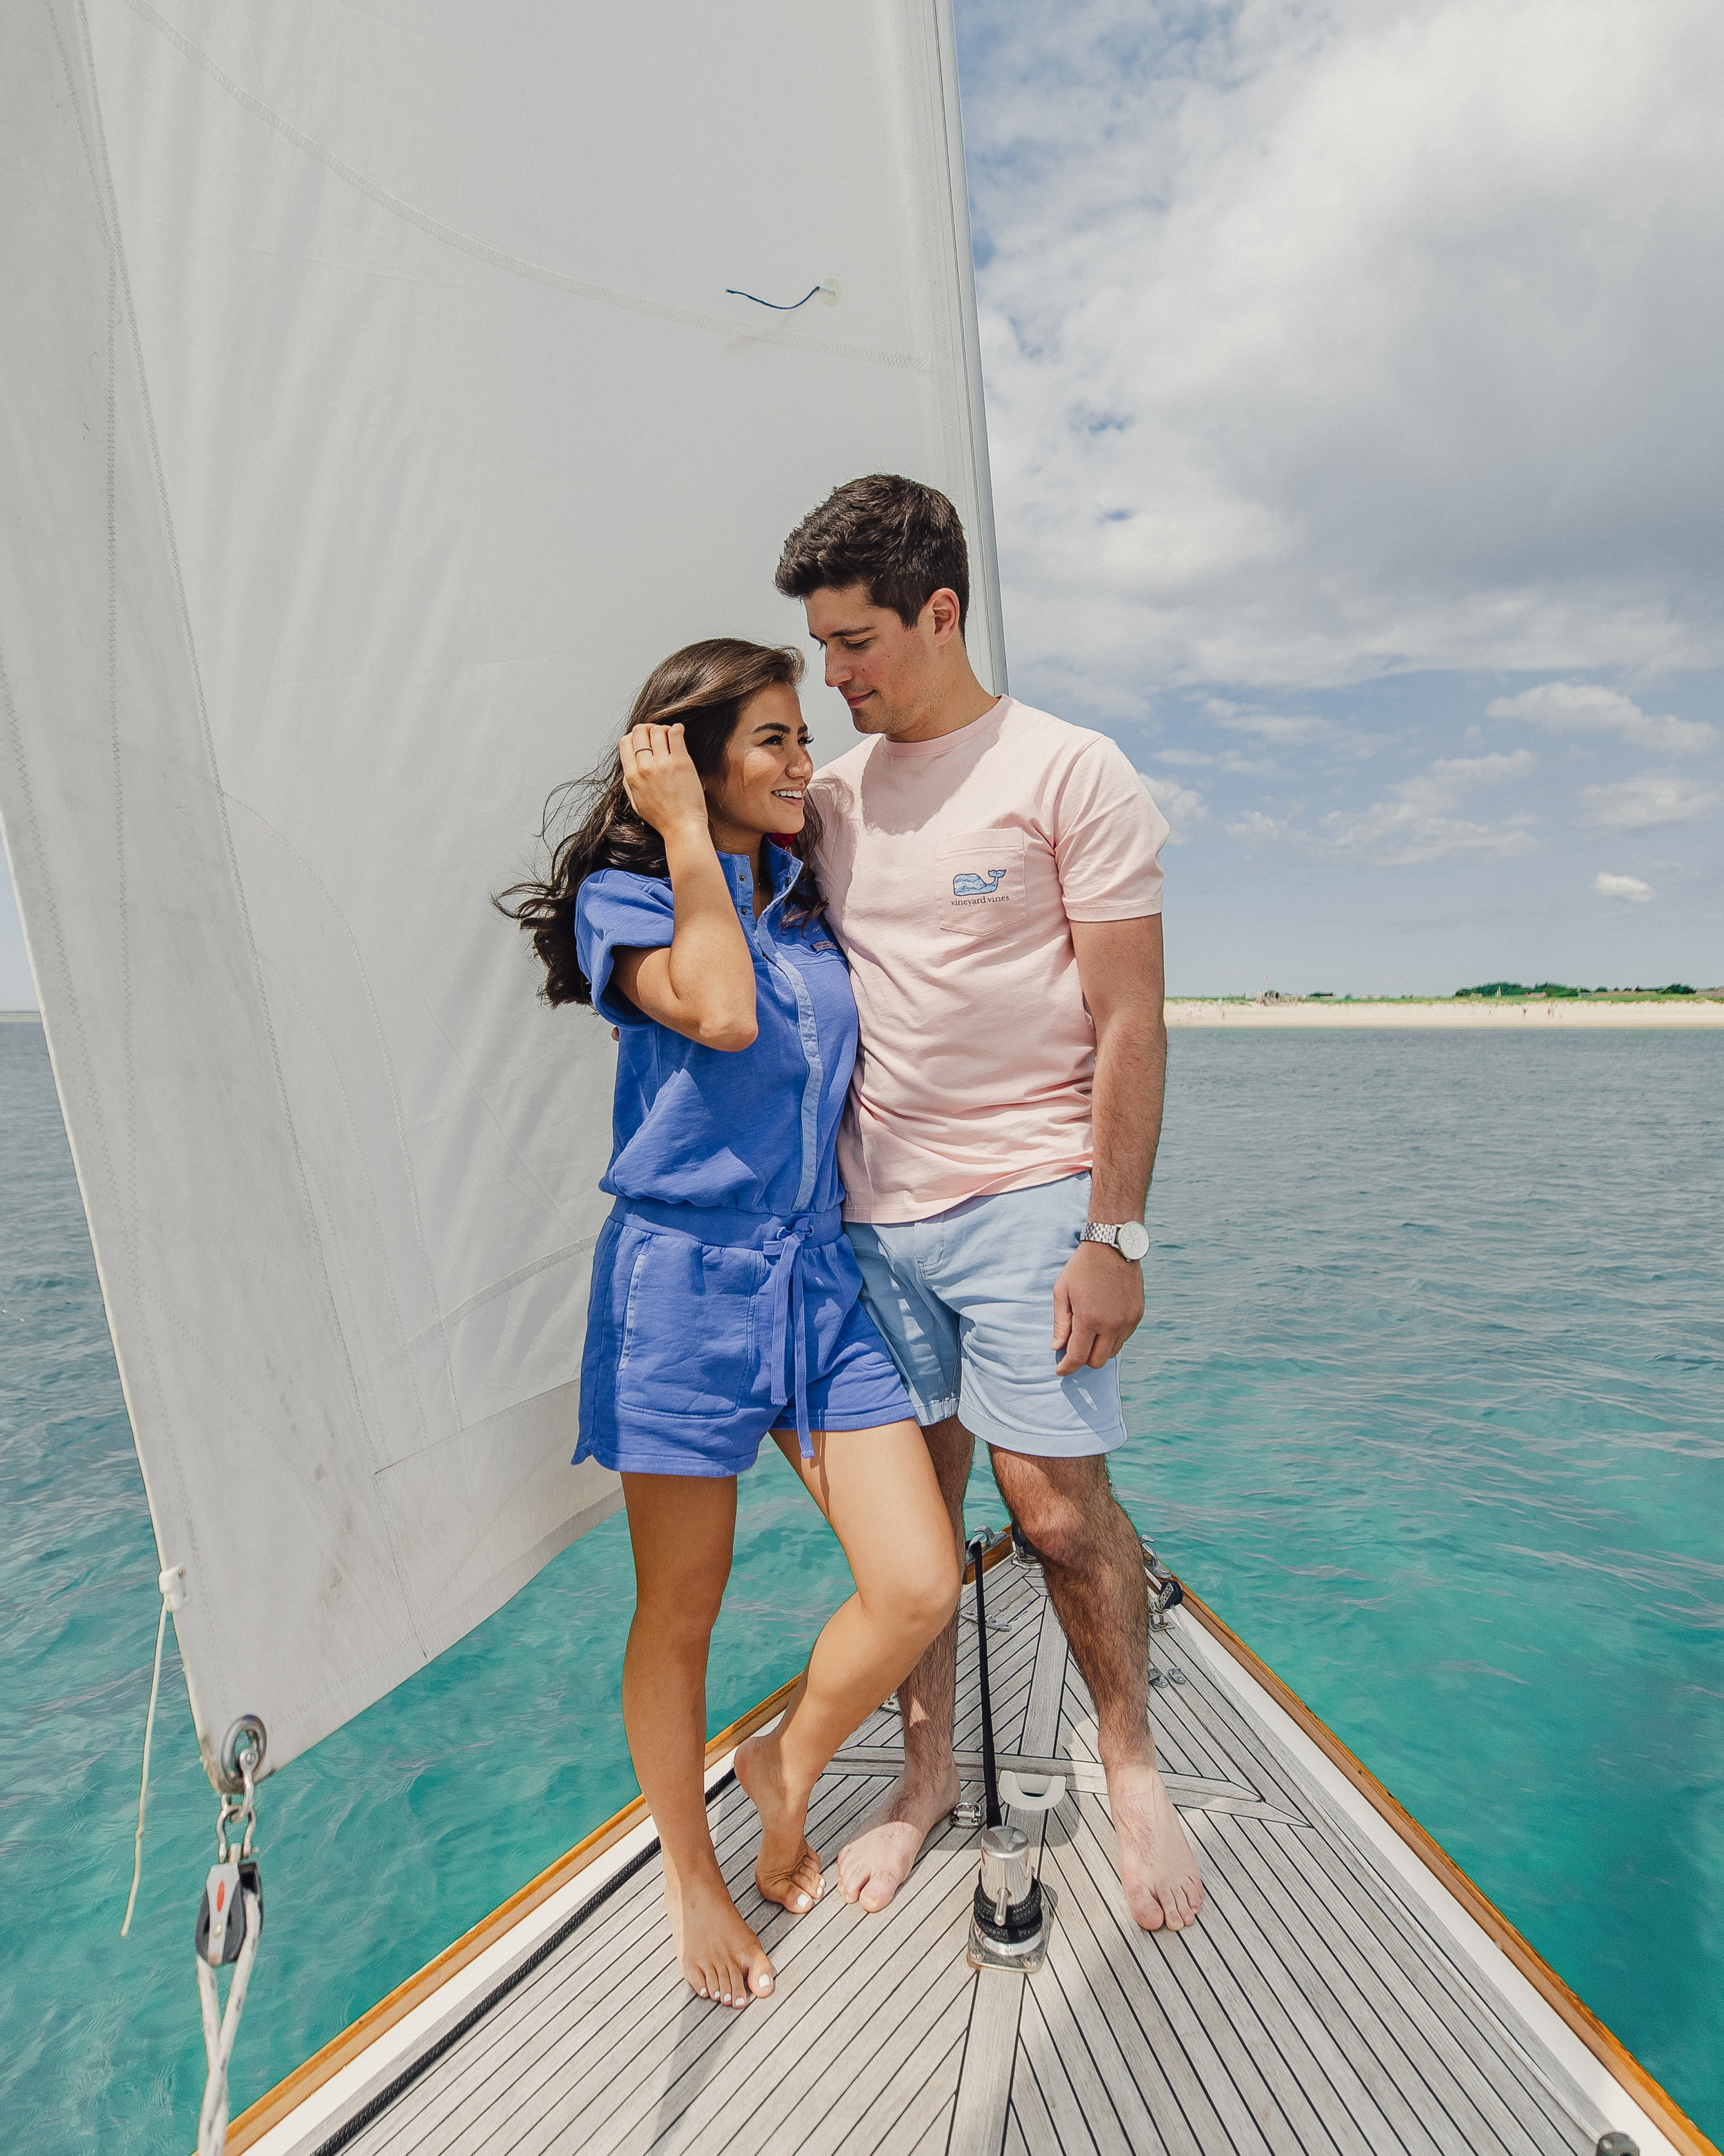 Caila Quinn The Bachelor Vineyard Vines Couples Weekend with Olivia Rink and Nick Burrello Cape Cod Chatham Bars Inn Sailboat